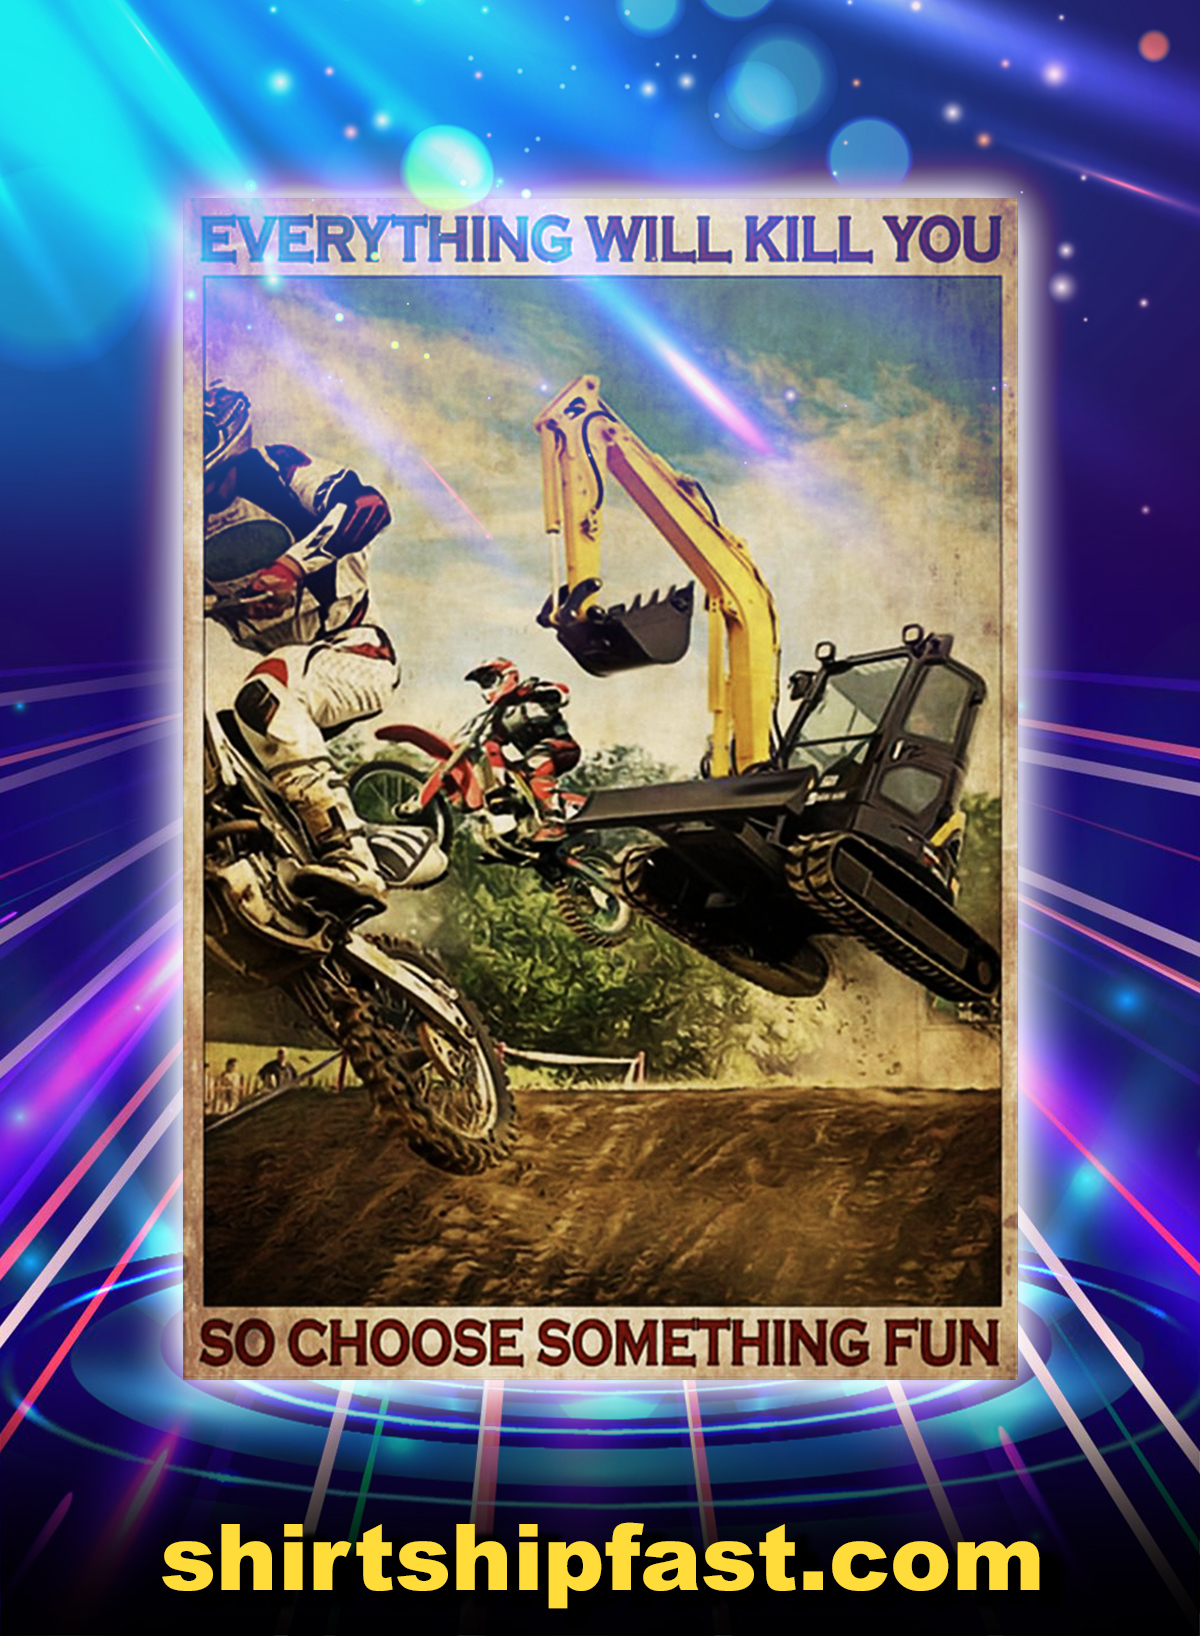 MOTOCROSS AND EXCAVATOR Everything will kill you poster - A1